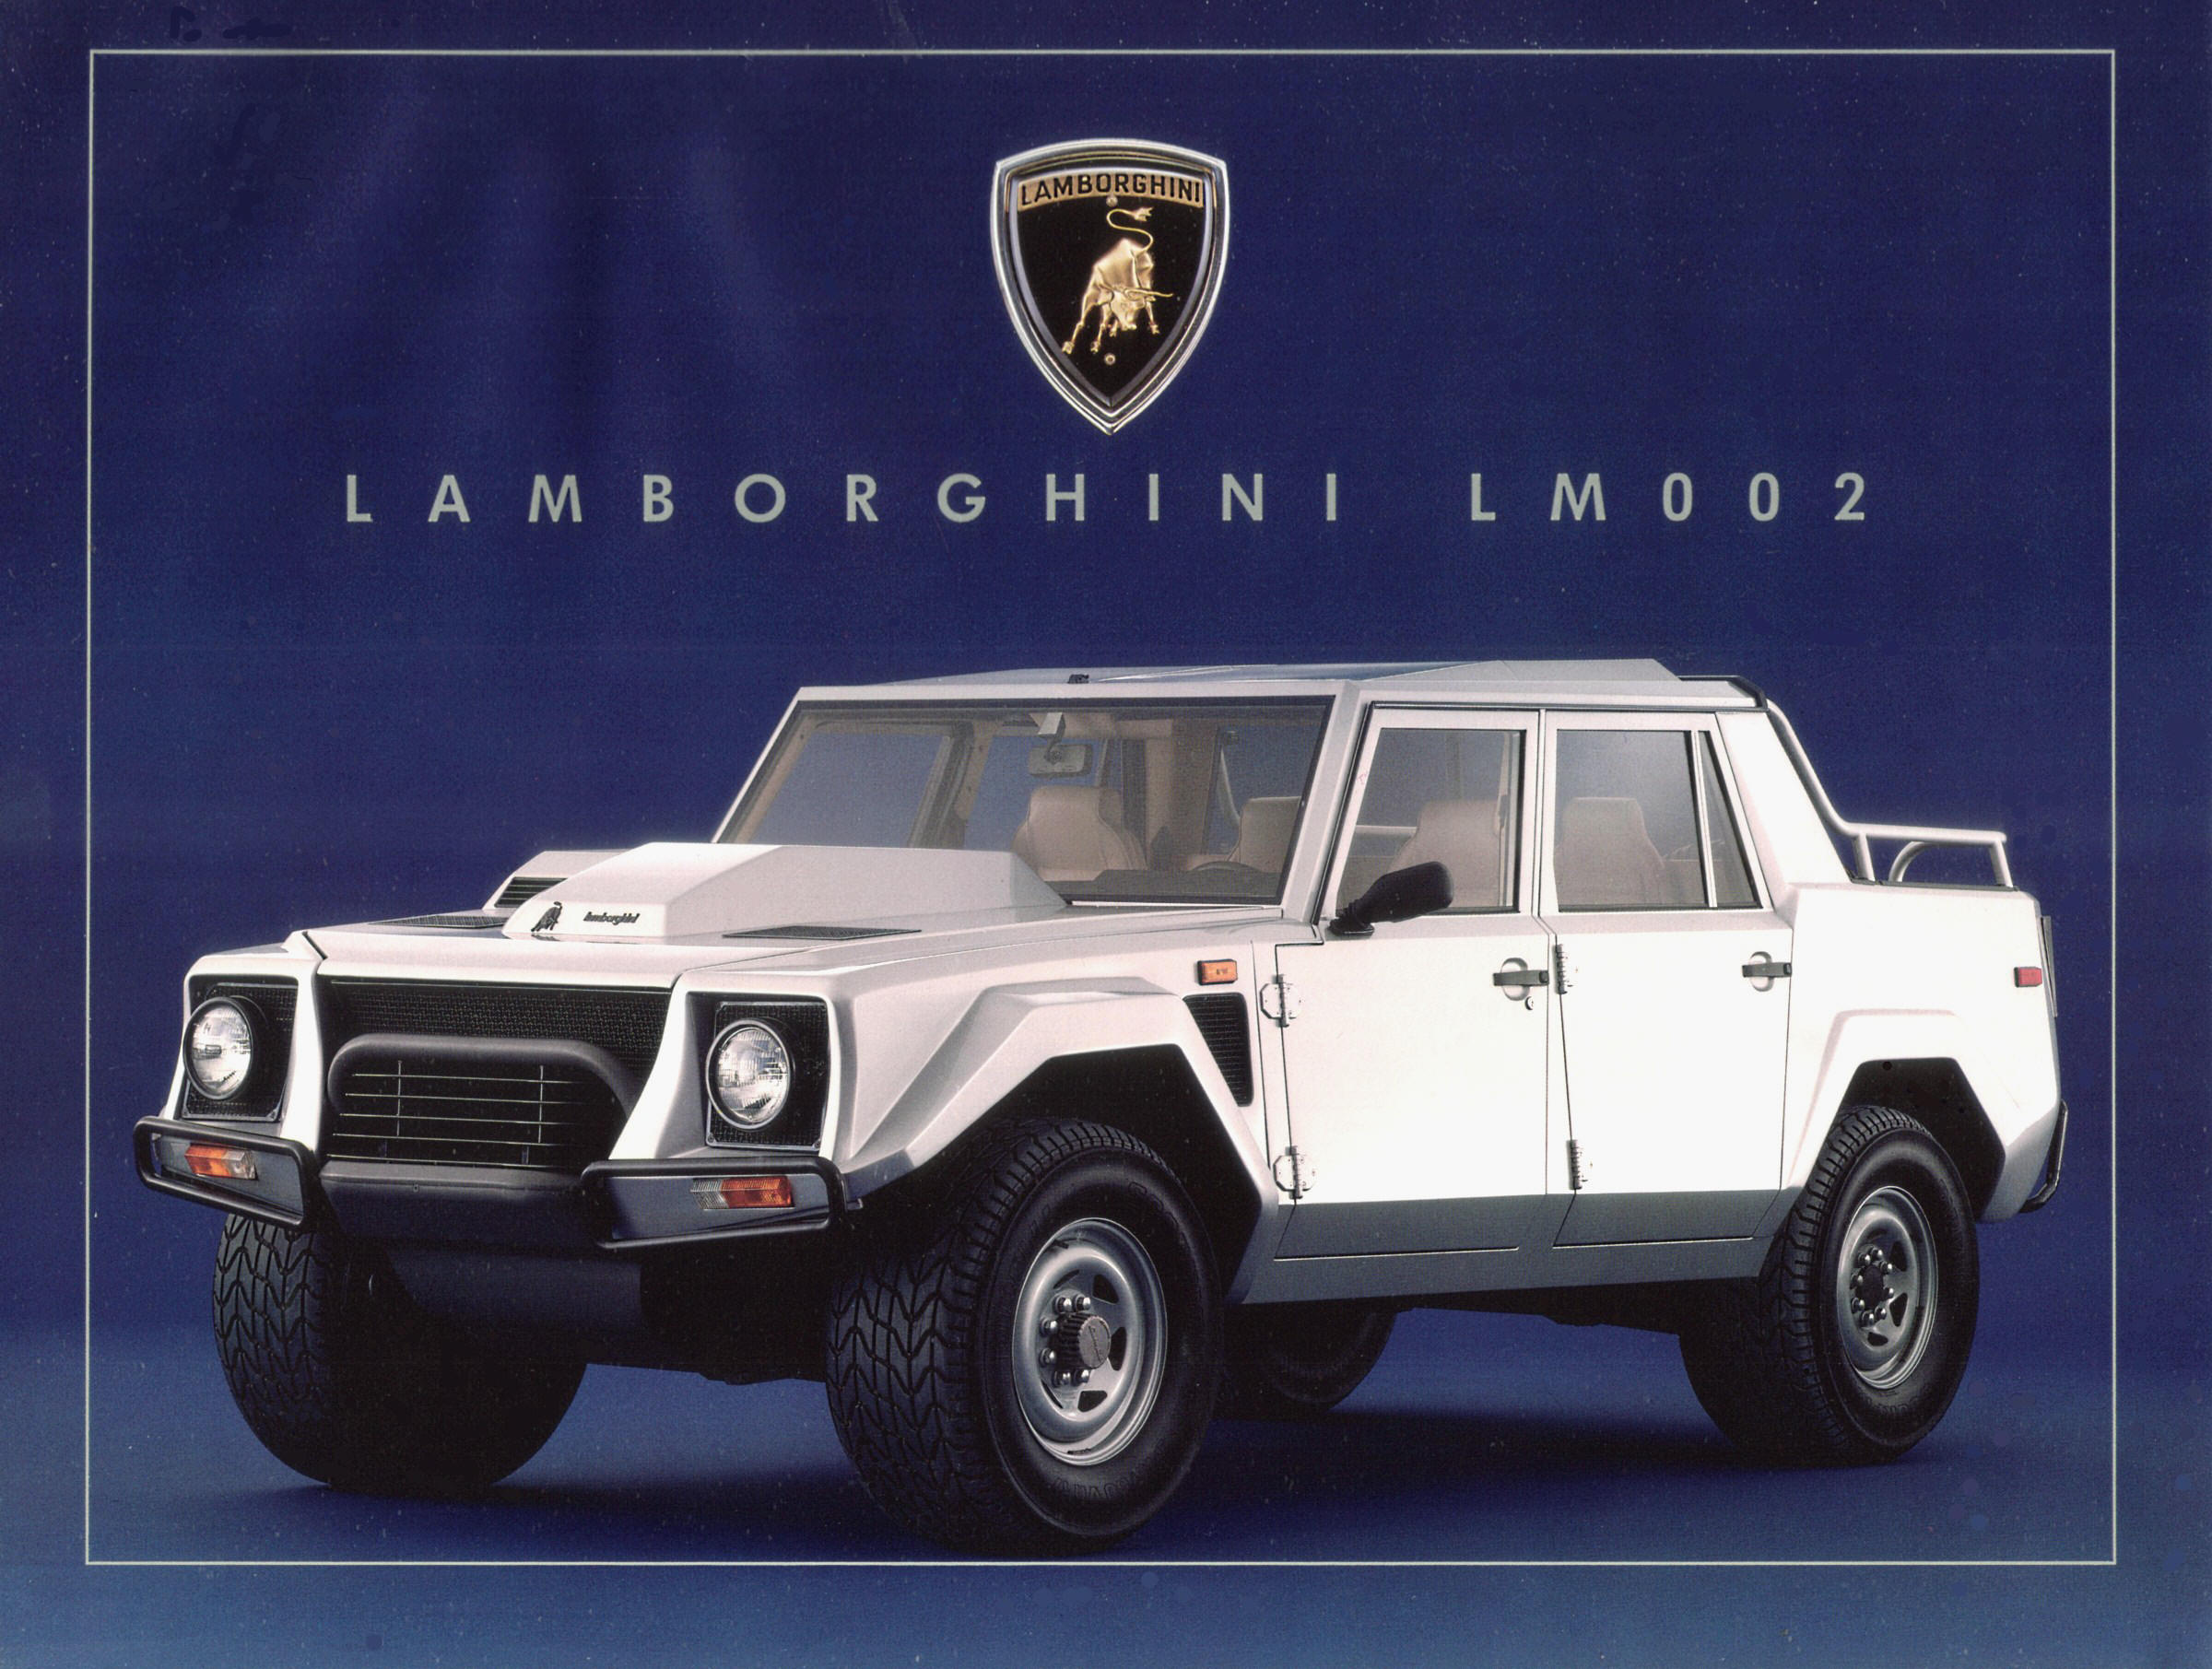 Lamborghini Lm002 A Blockbusting Raging Machine